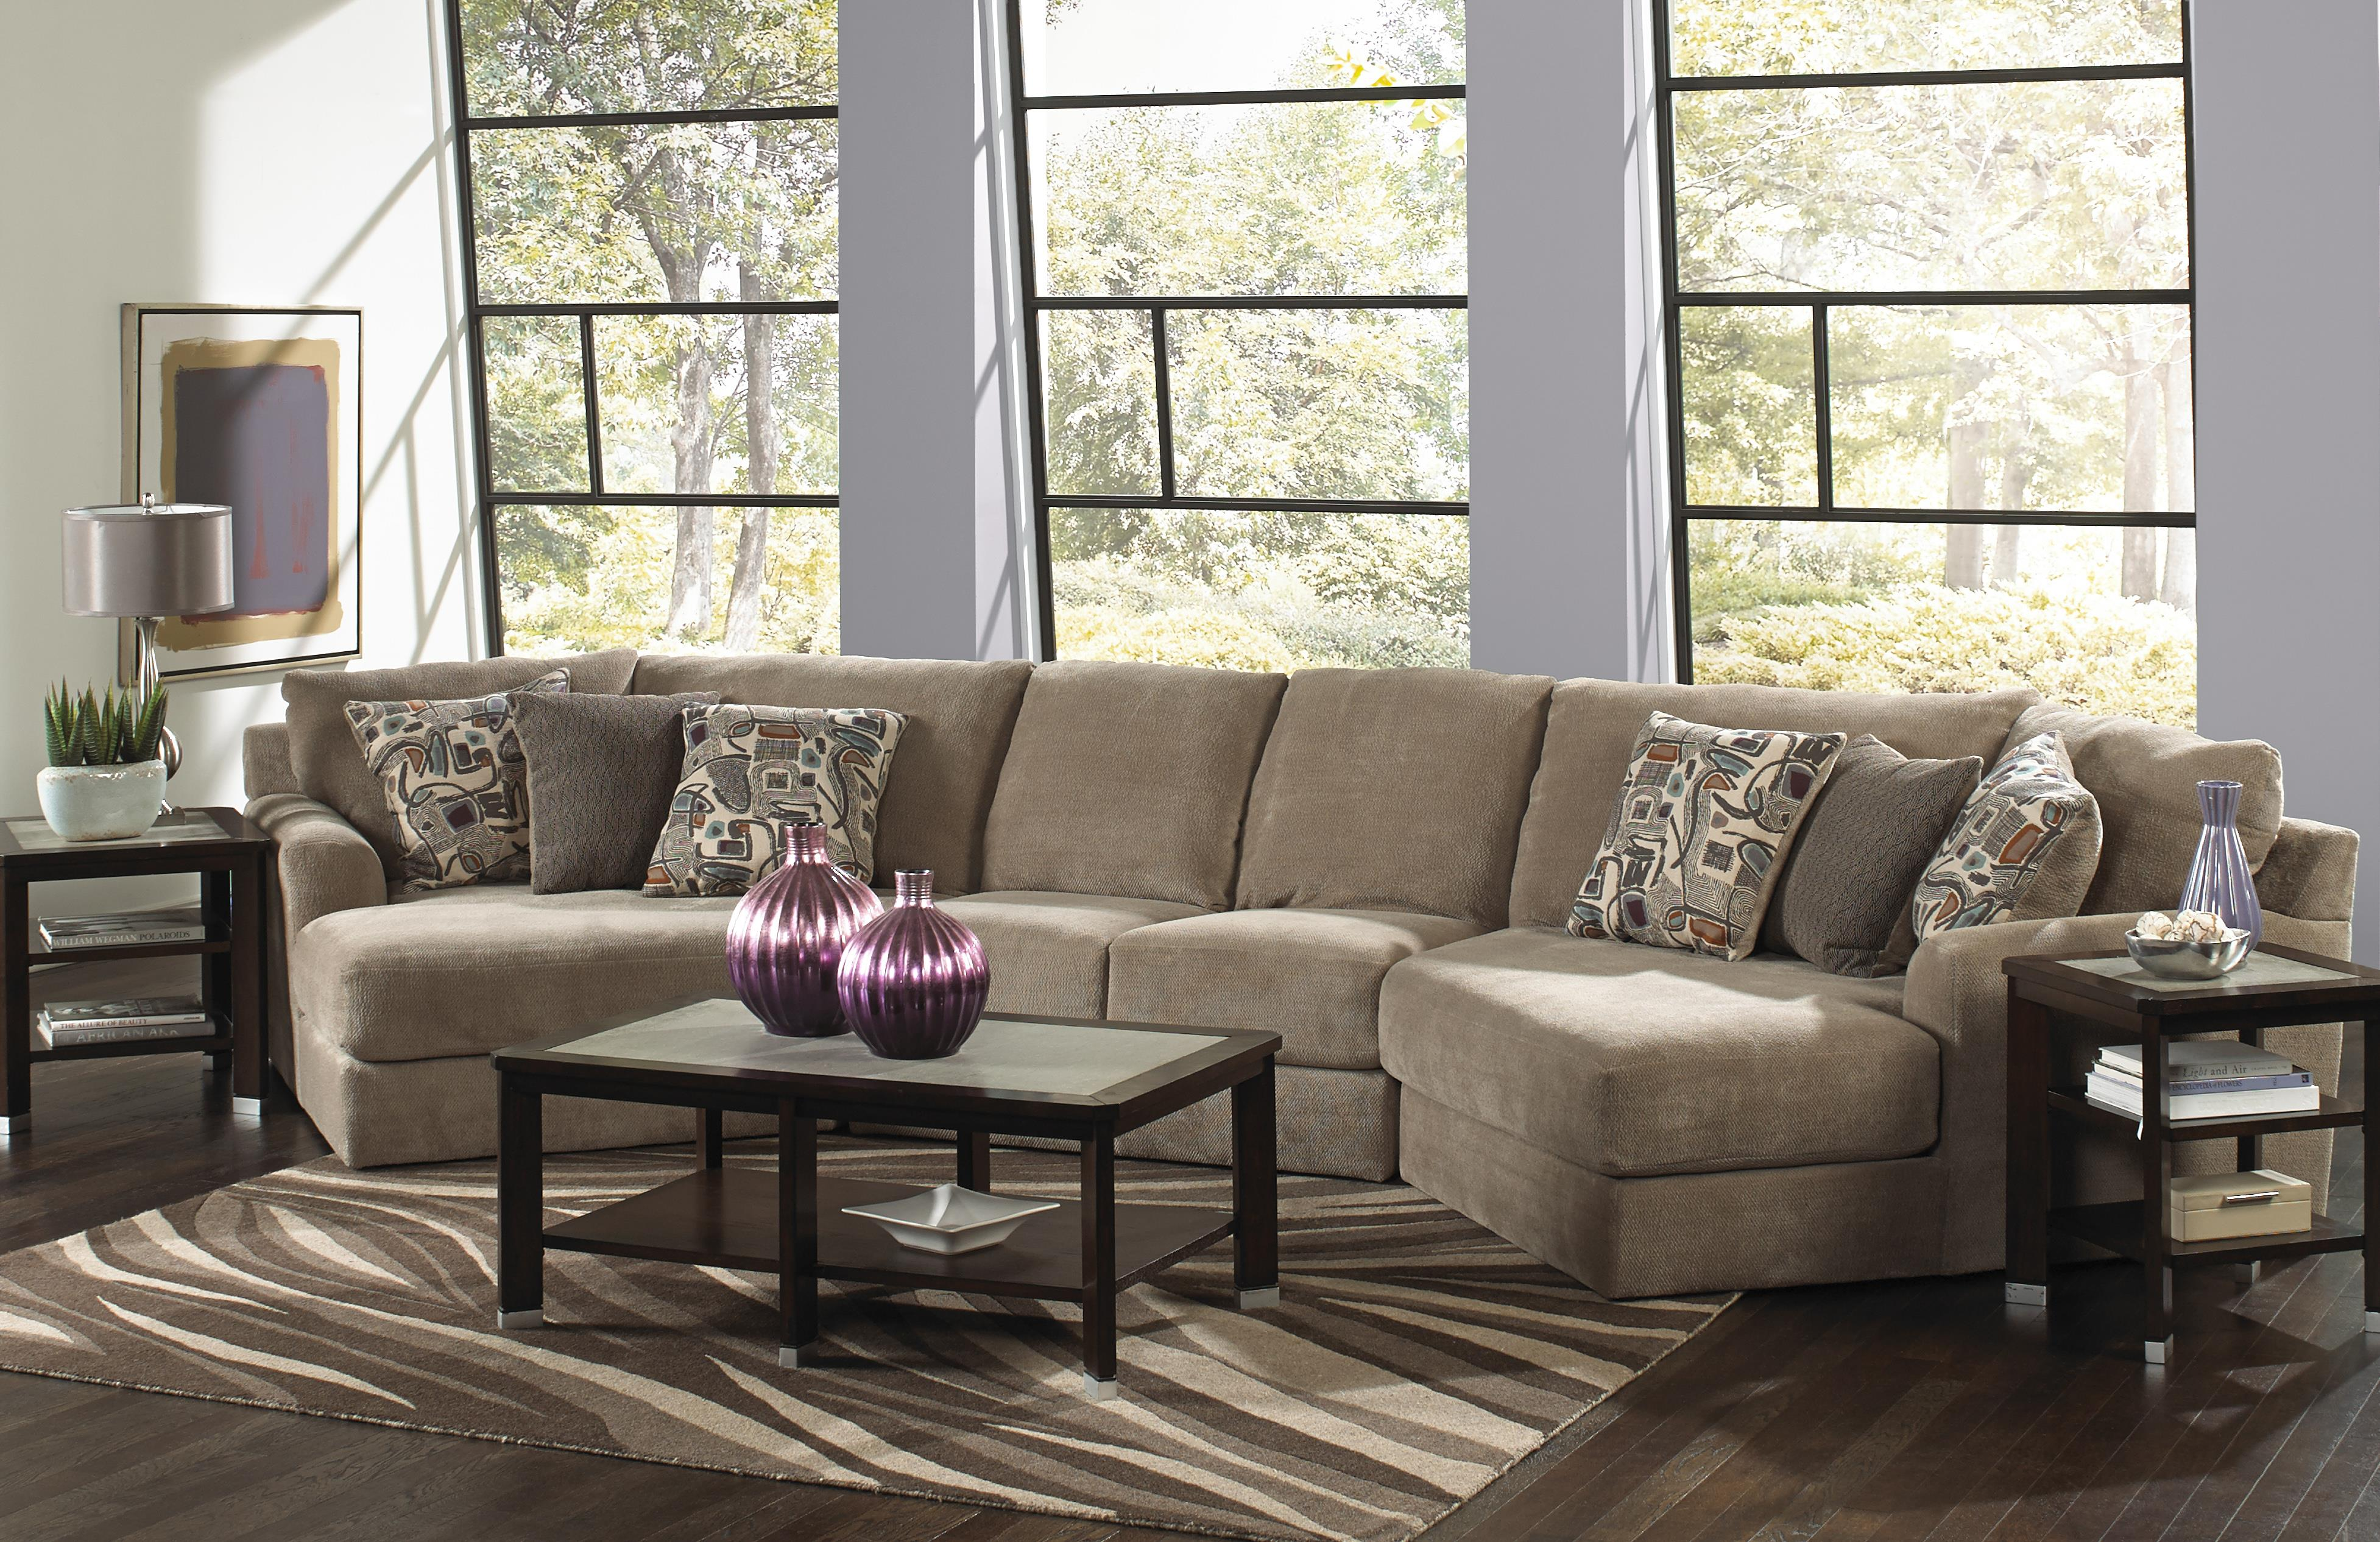 Whole Living Room Sets Four Seat Sectional Sofa By Jackson Furniture Wolf And Gardiner